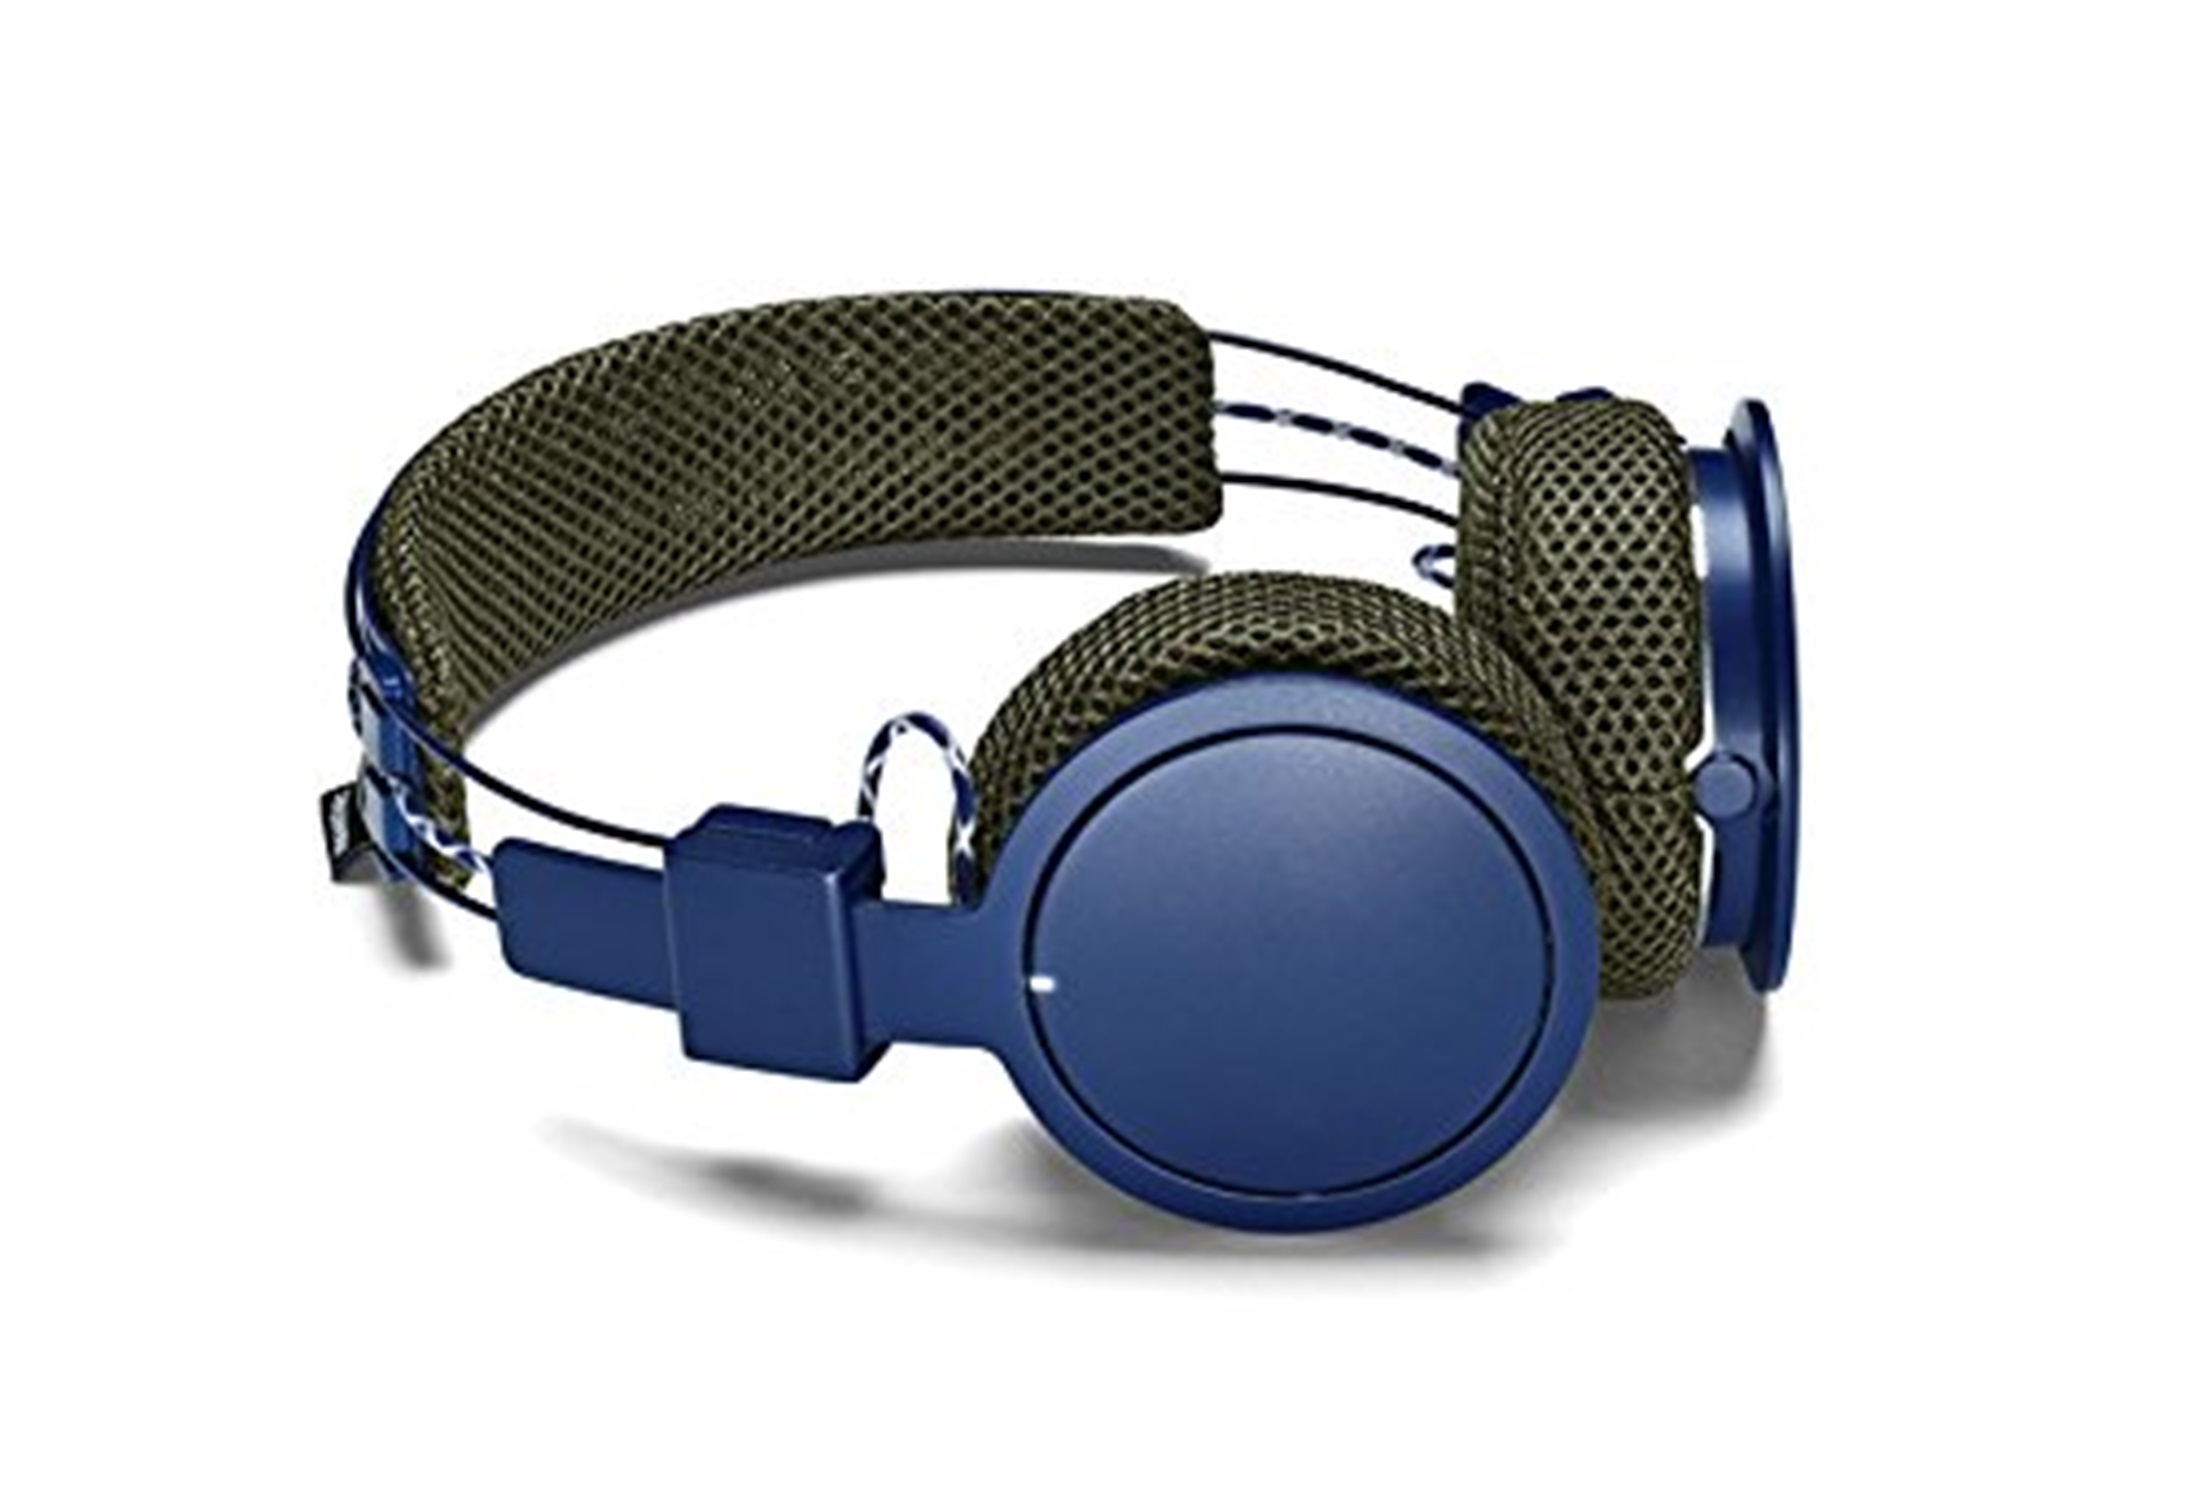 URBANEARS - ACCESSORI AUDIO - 7340055315845